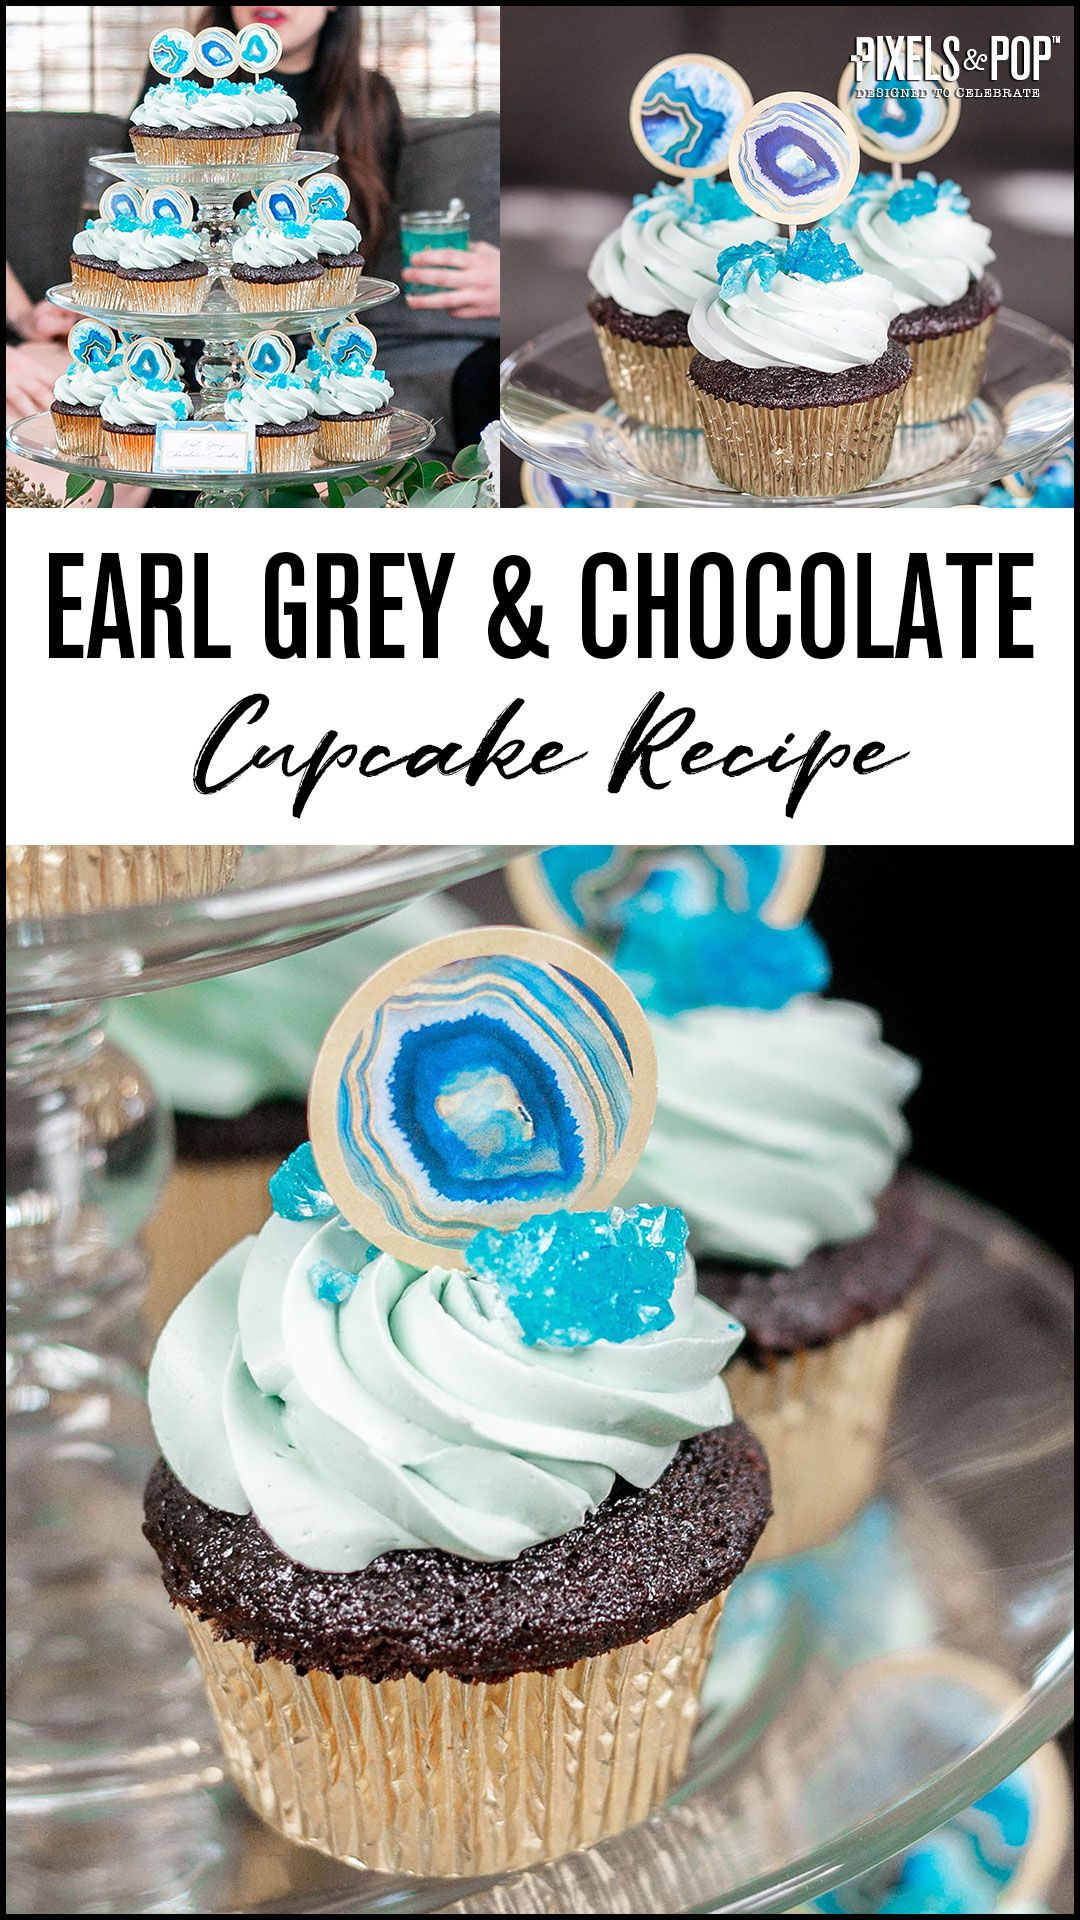 This Earl Grey & Chocolate Cupcake recipe is sure to rock your tastebuds! They're perfect for any celebration, especially a Geode or gem party!